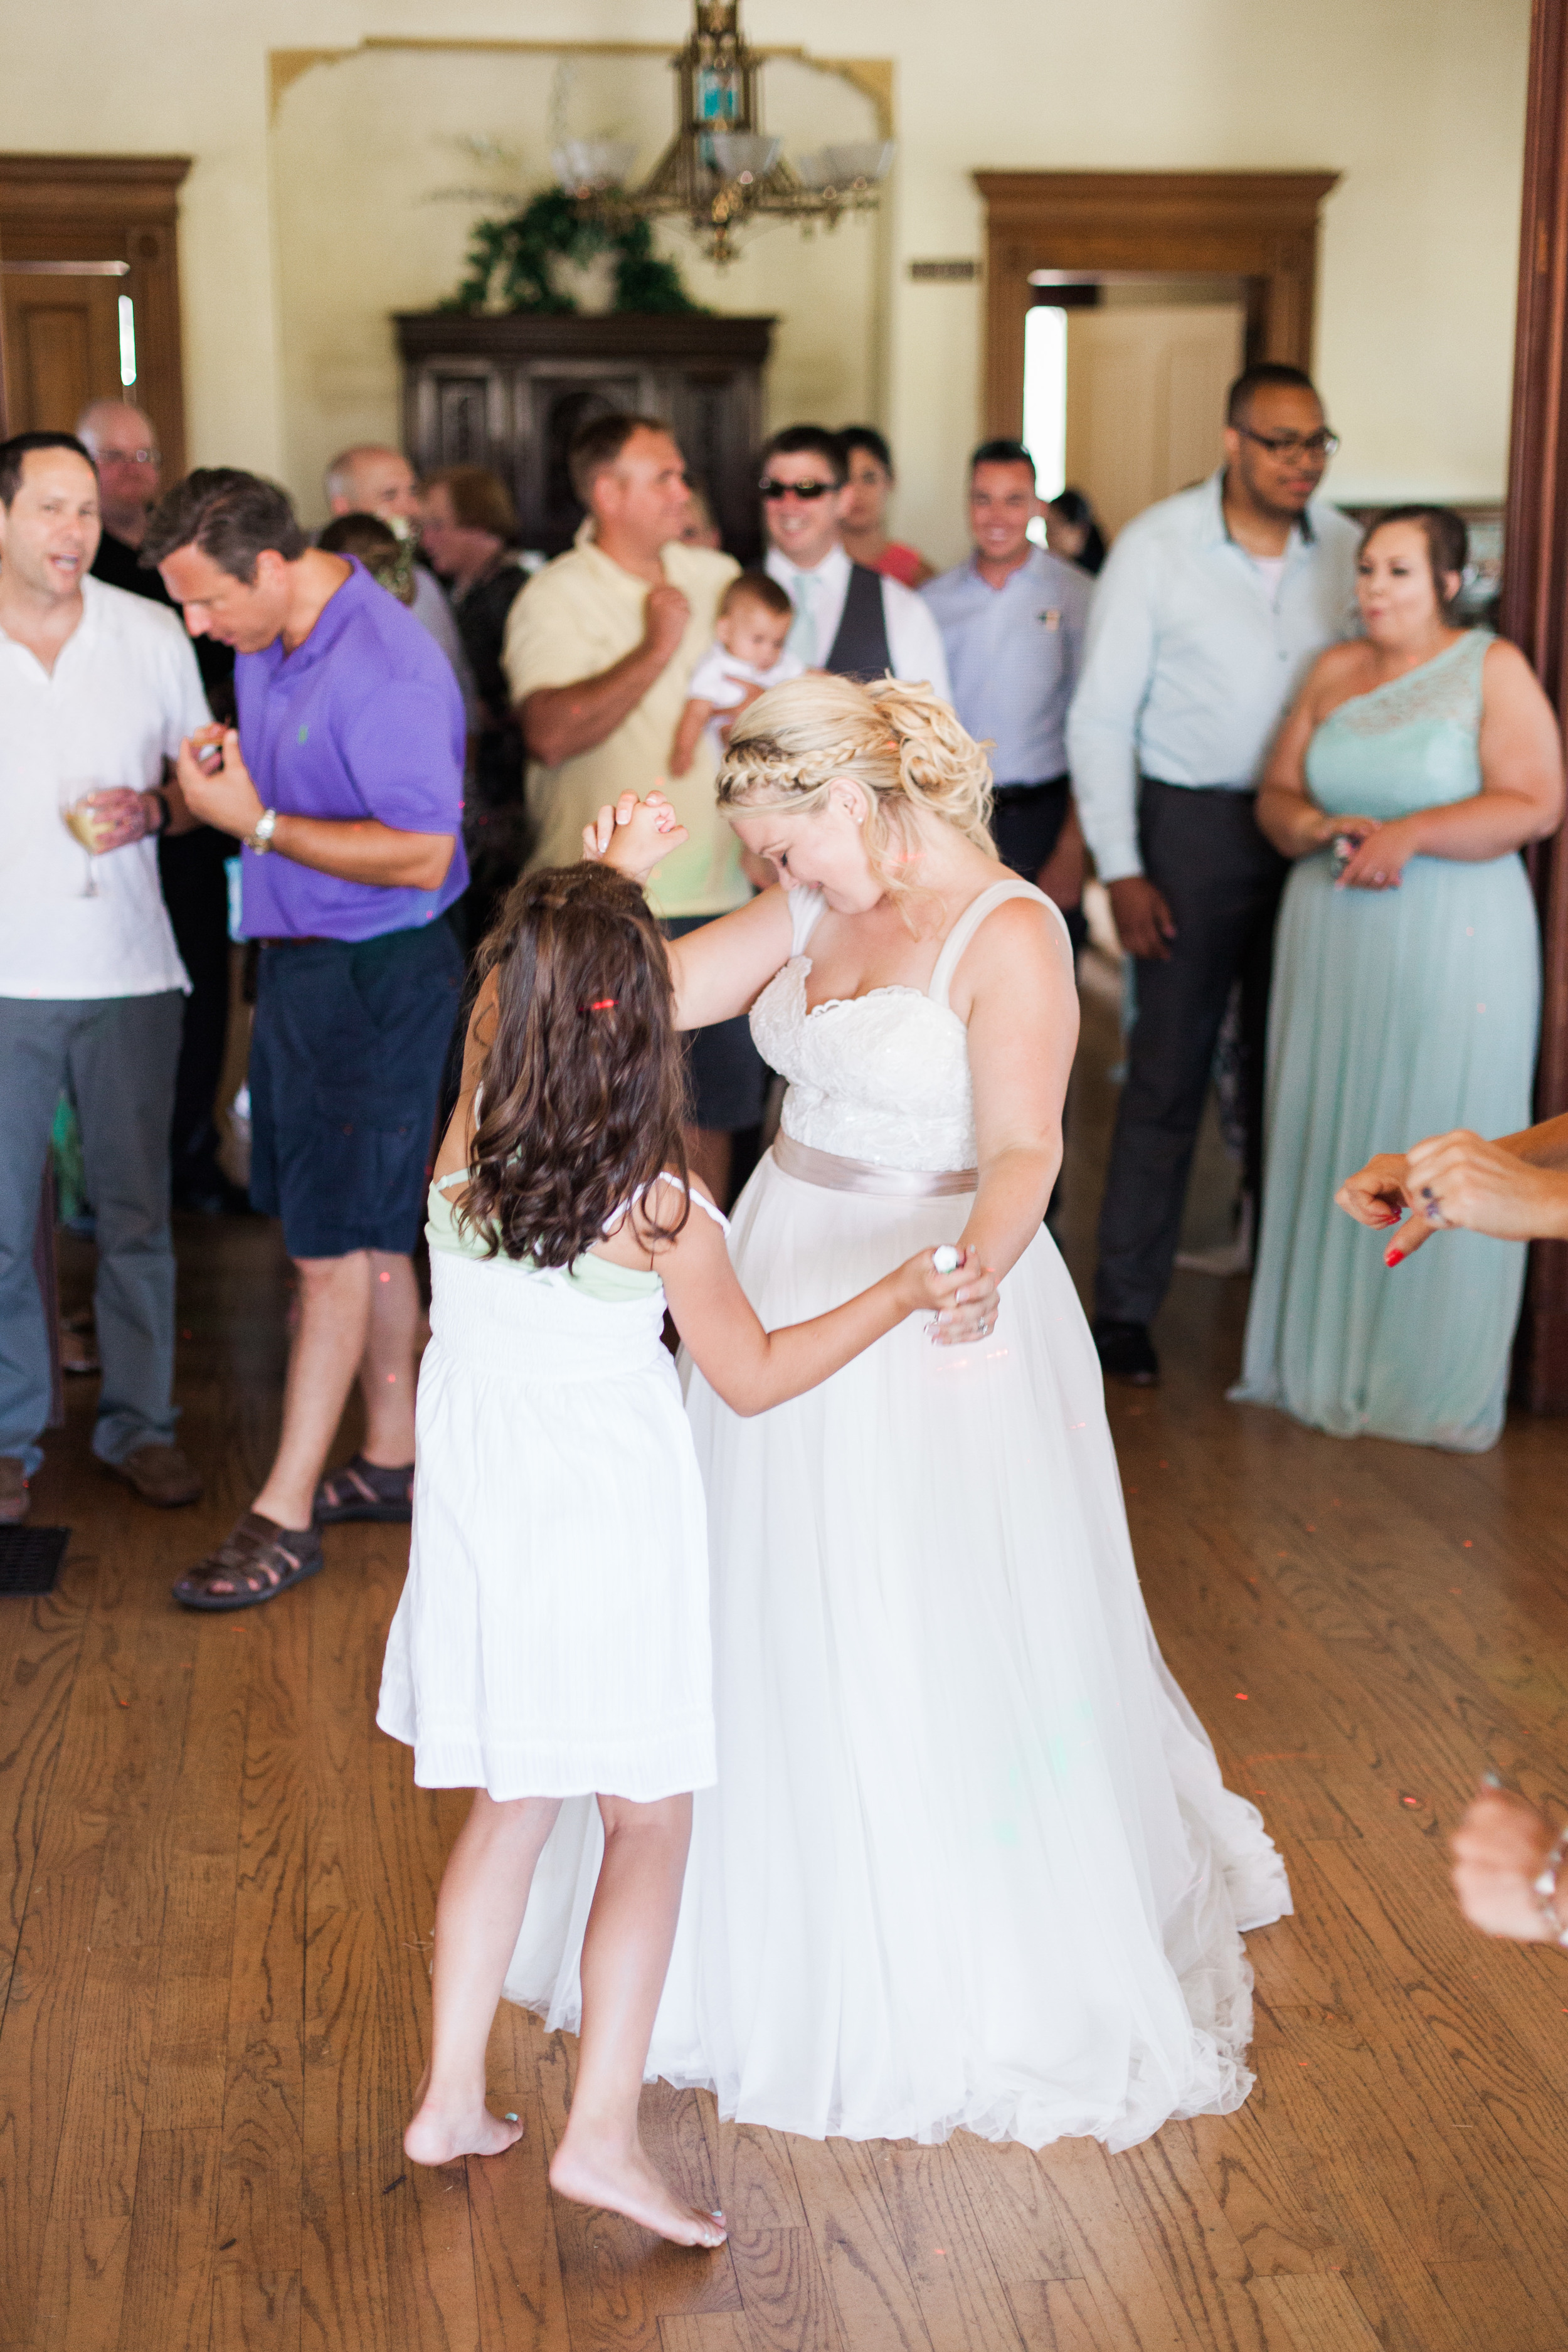 southern-inspired-wedding-at-ravenswood-historic-site-5860.jpg